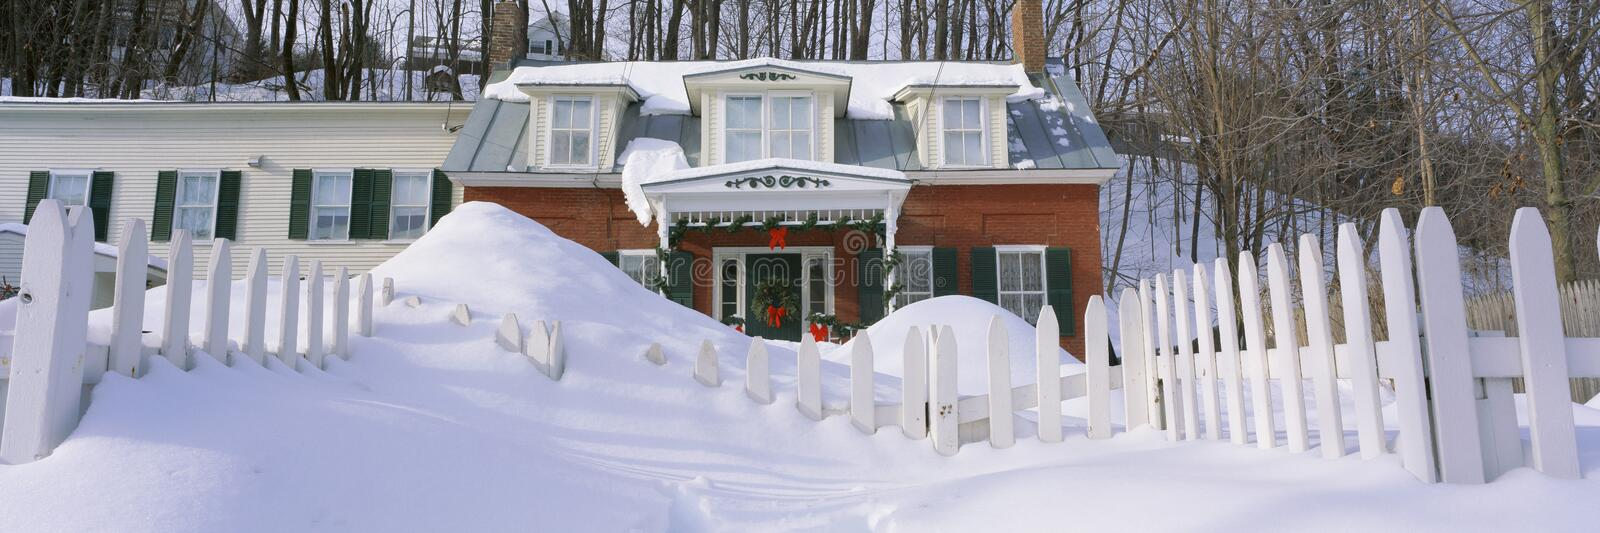 Download Inn at wintertime stock photo. Image of vermont, christmas - 23162378